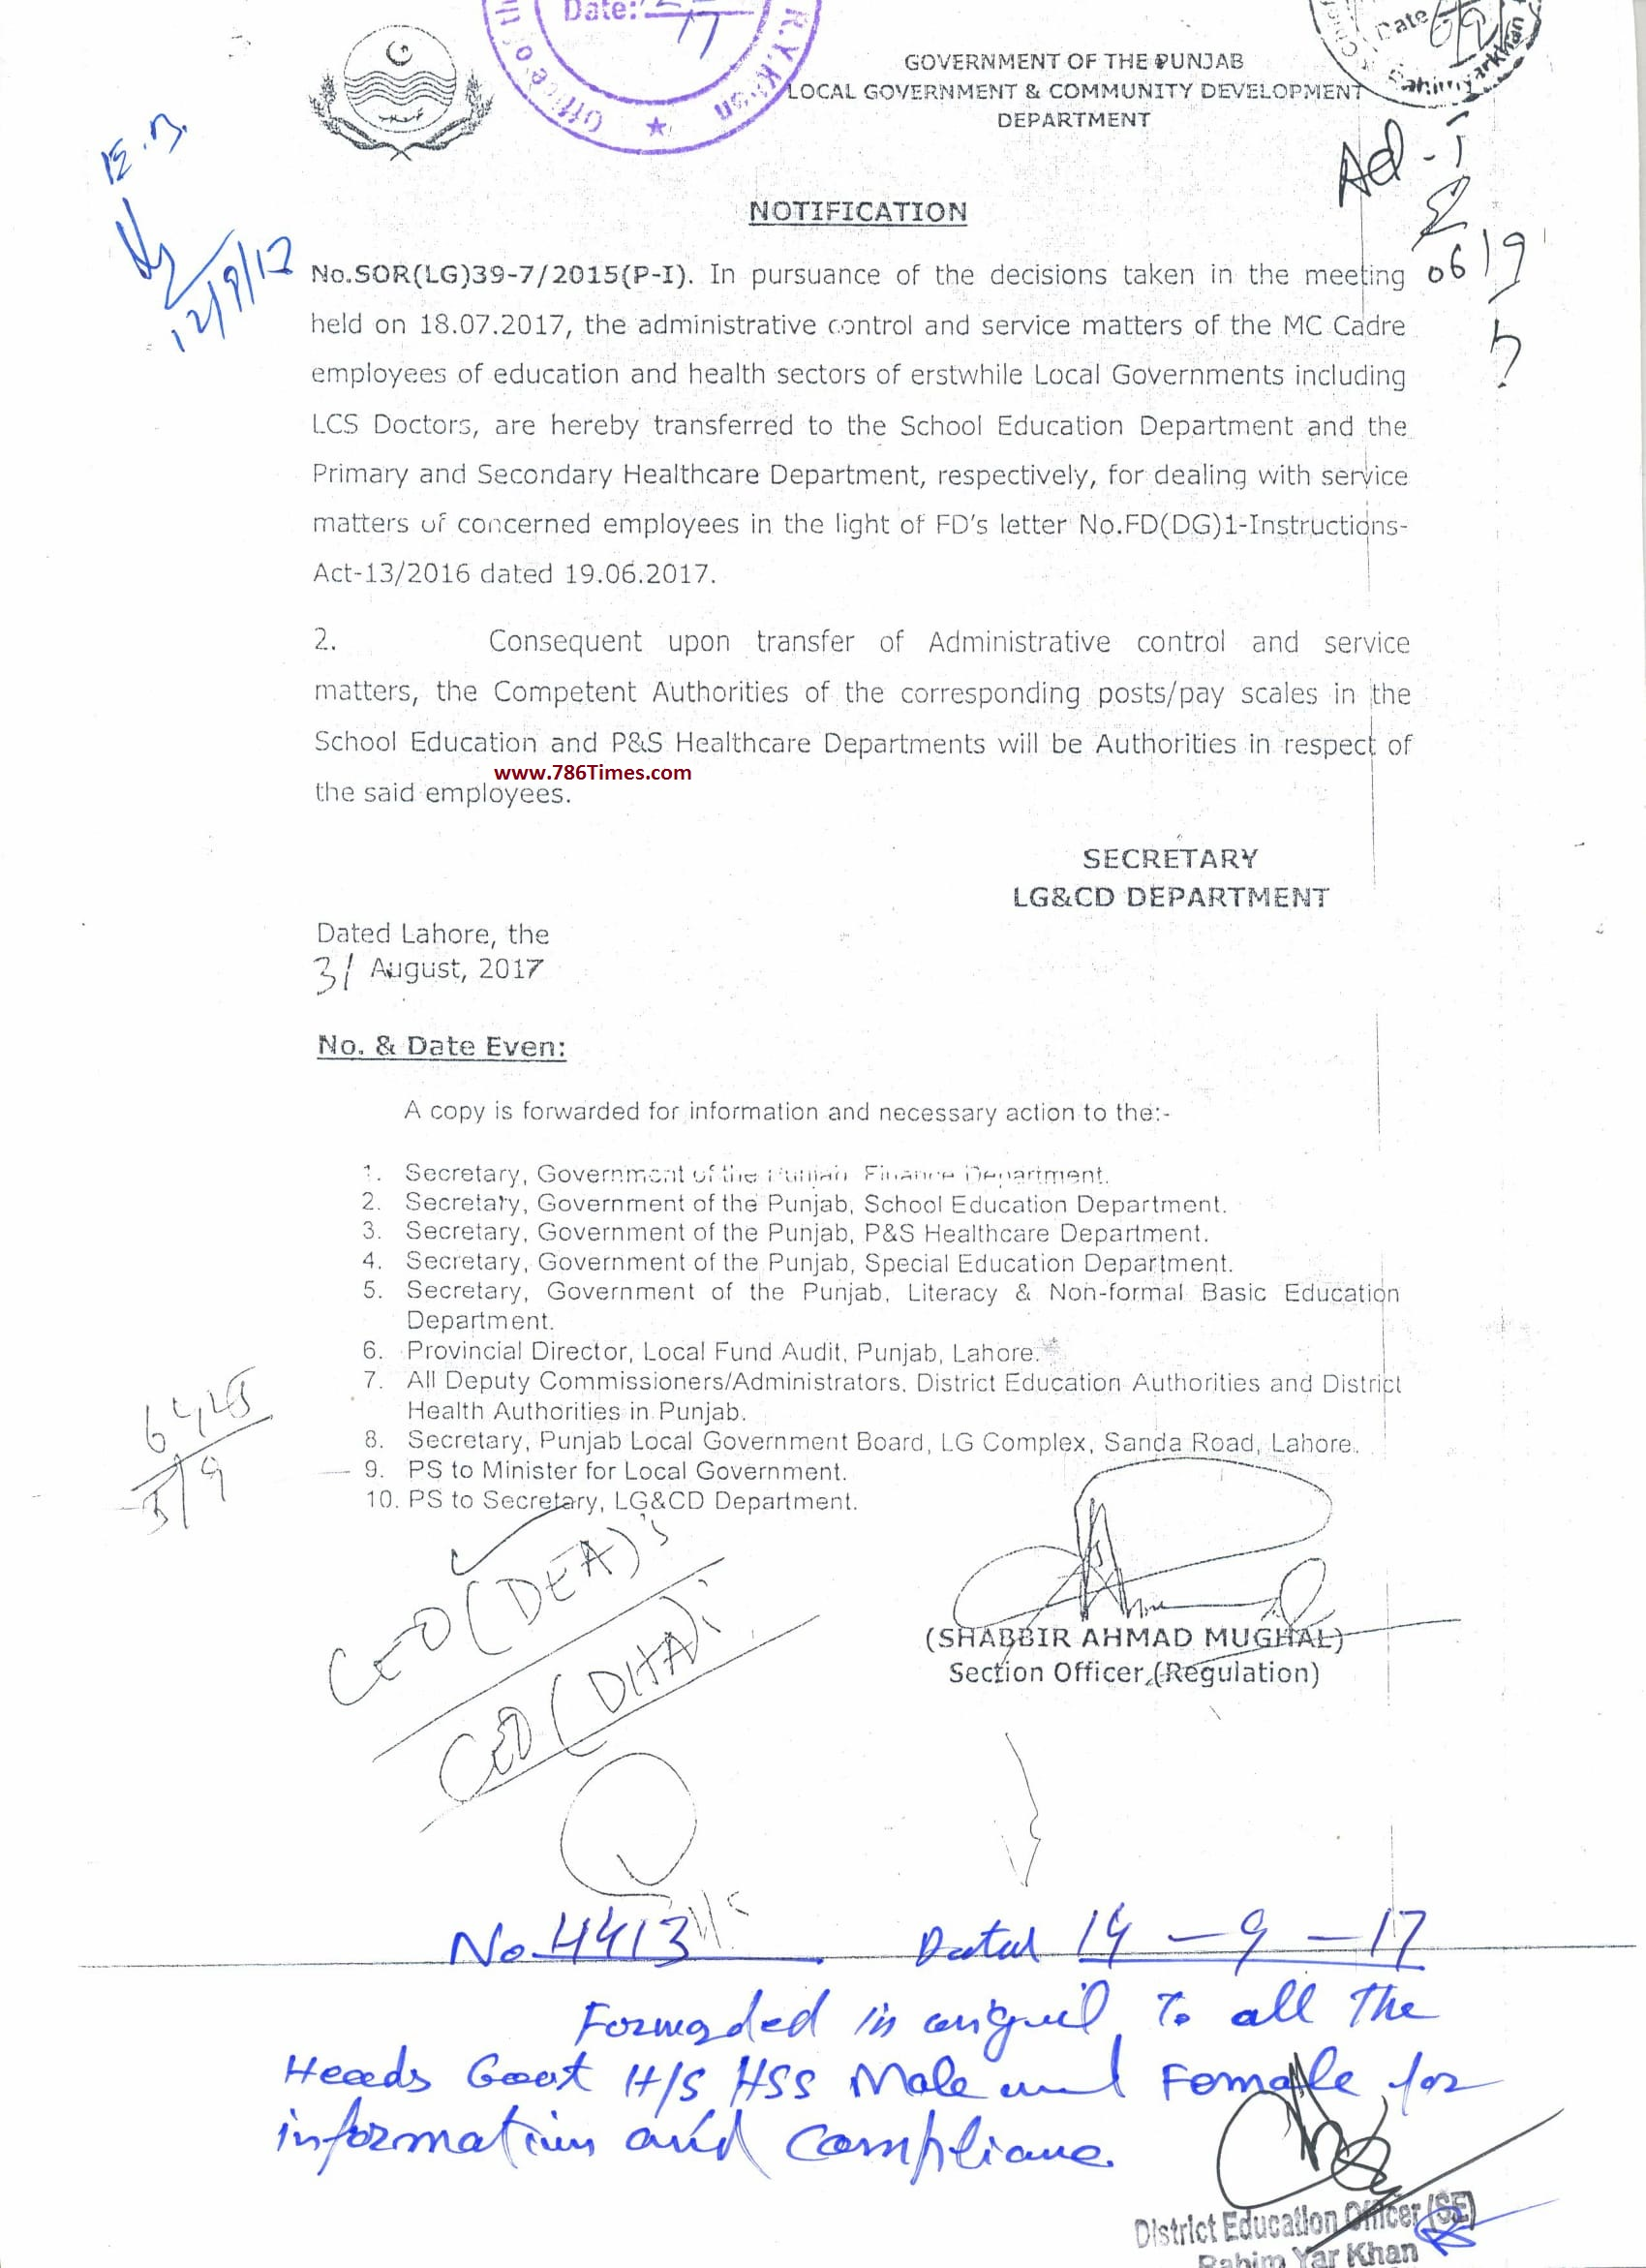 Municipal Committee Schools and Hospitals Transfer to Education & Health Department